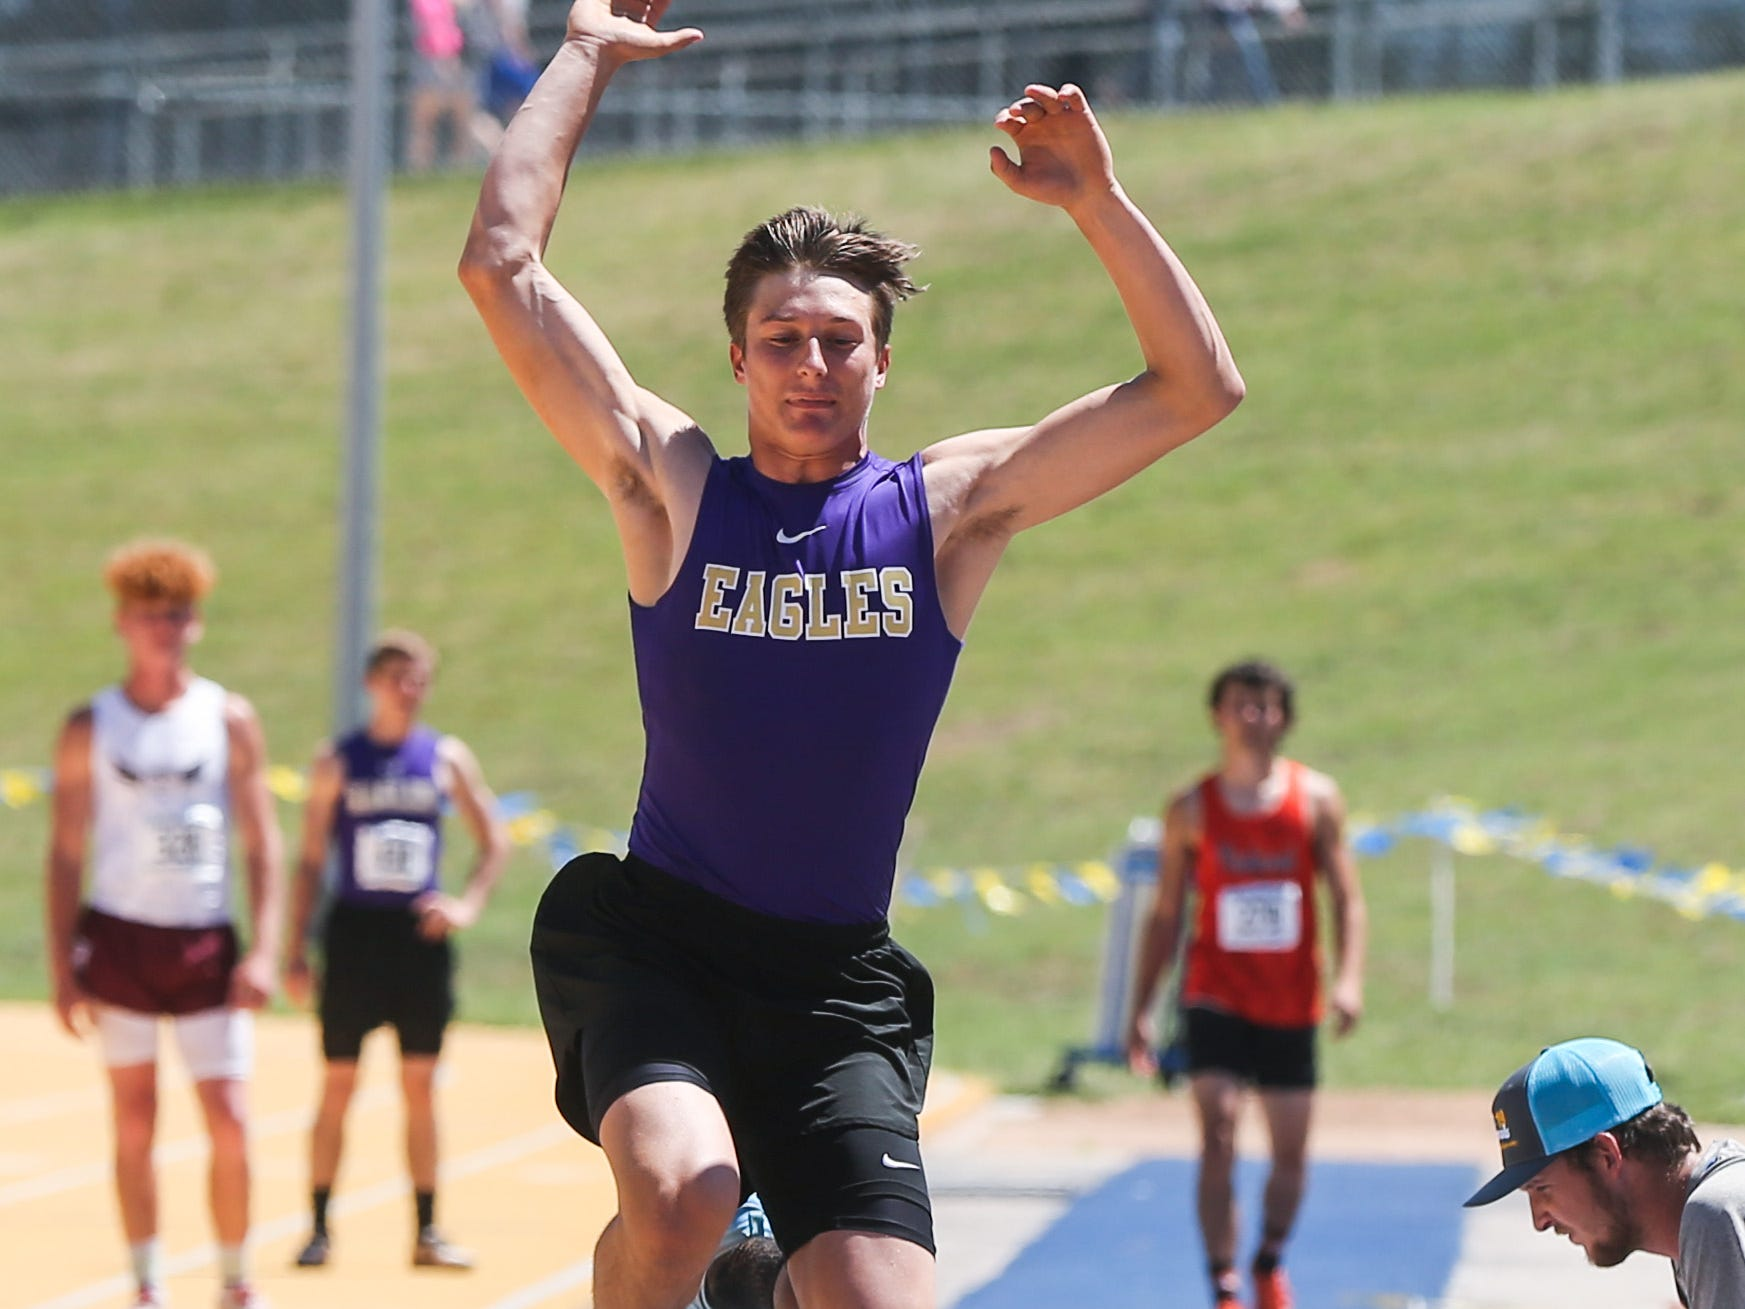 Sterling City's Quinton McMullan competes in the boys long jump during the Region II-1A championships Friday, April 26, 2019, at Angelo State University.